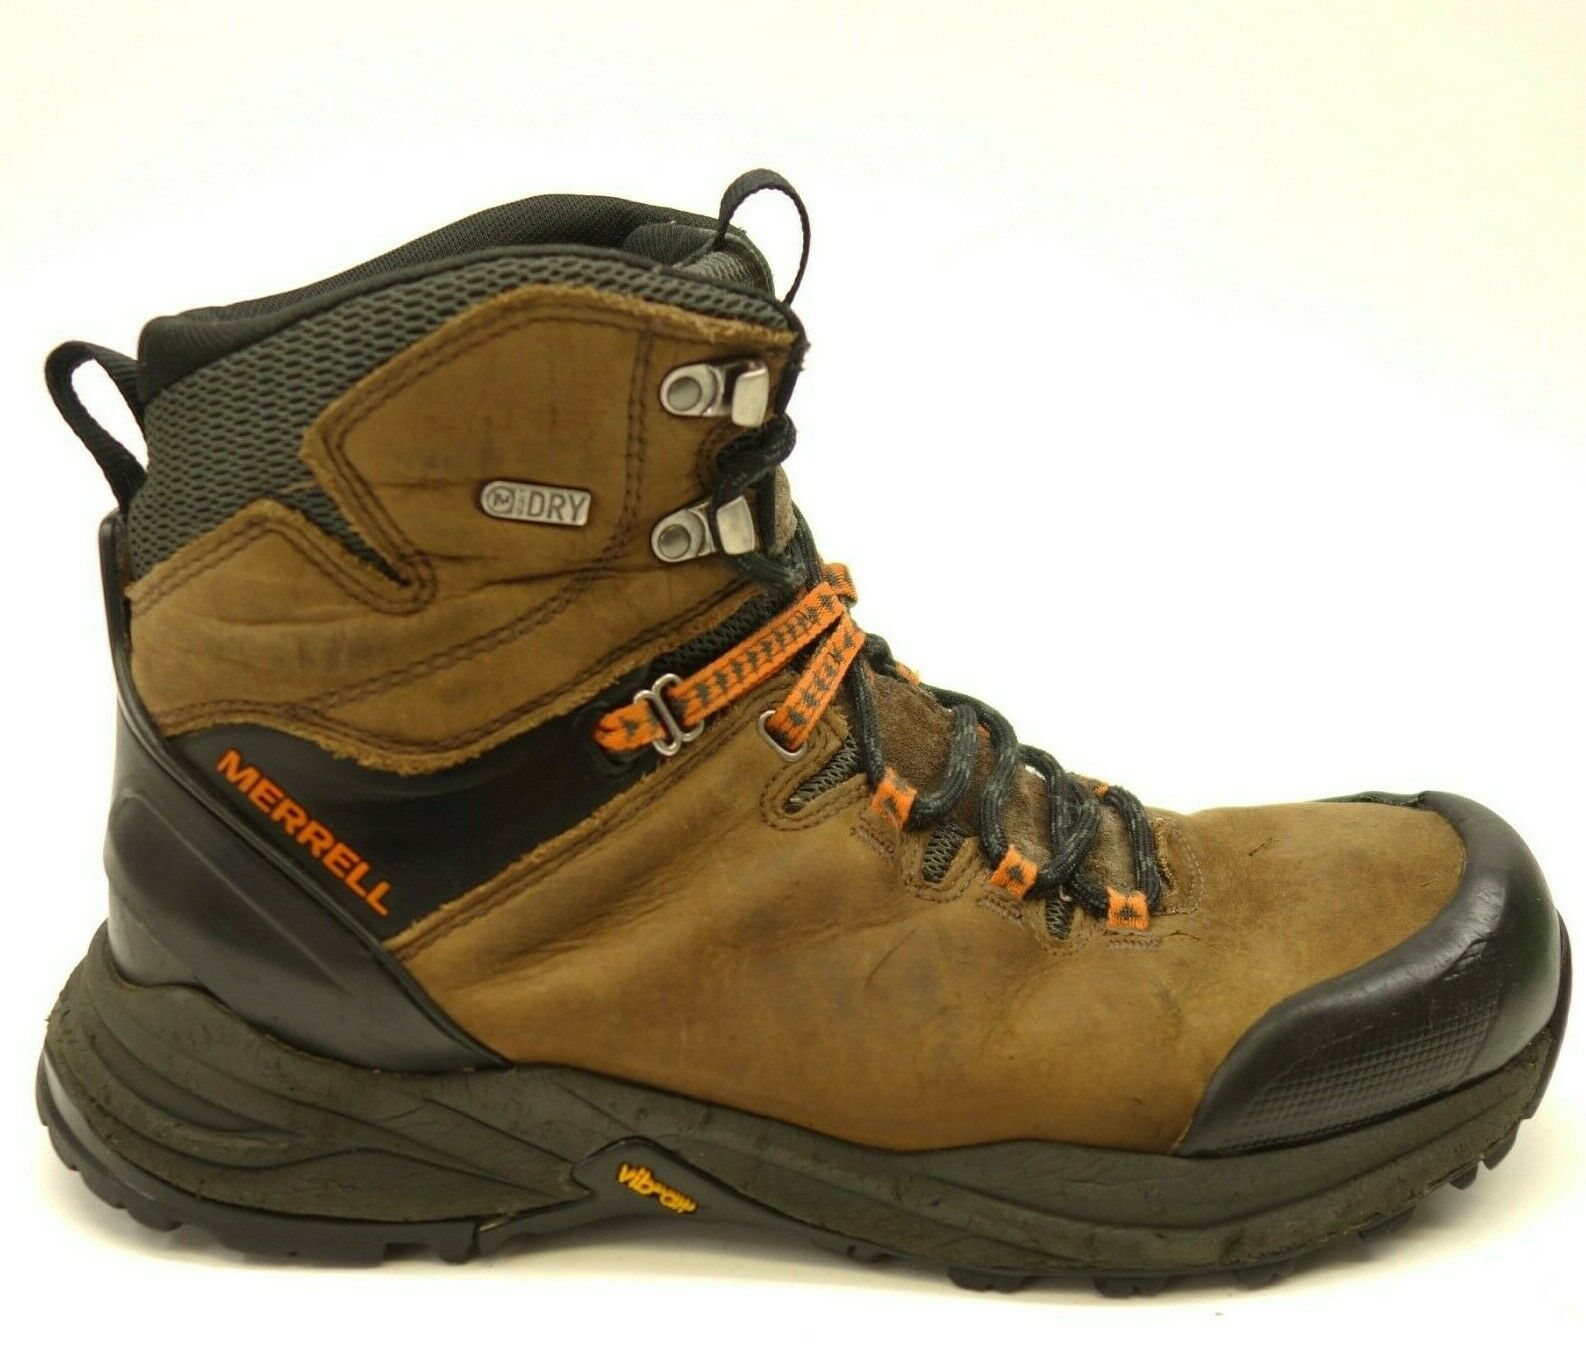 Merrell Phaserbound US 9.5 Hiking Waterproof Leather Athletic Mens Boots